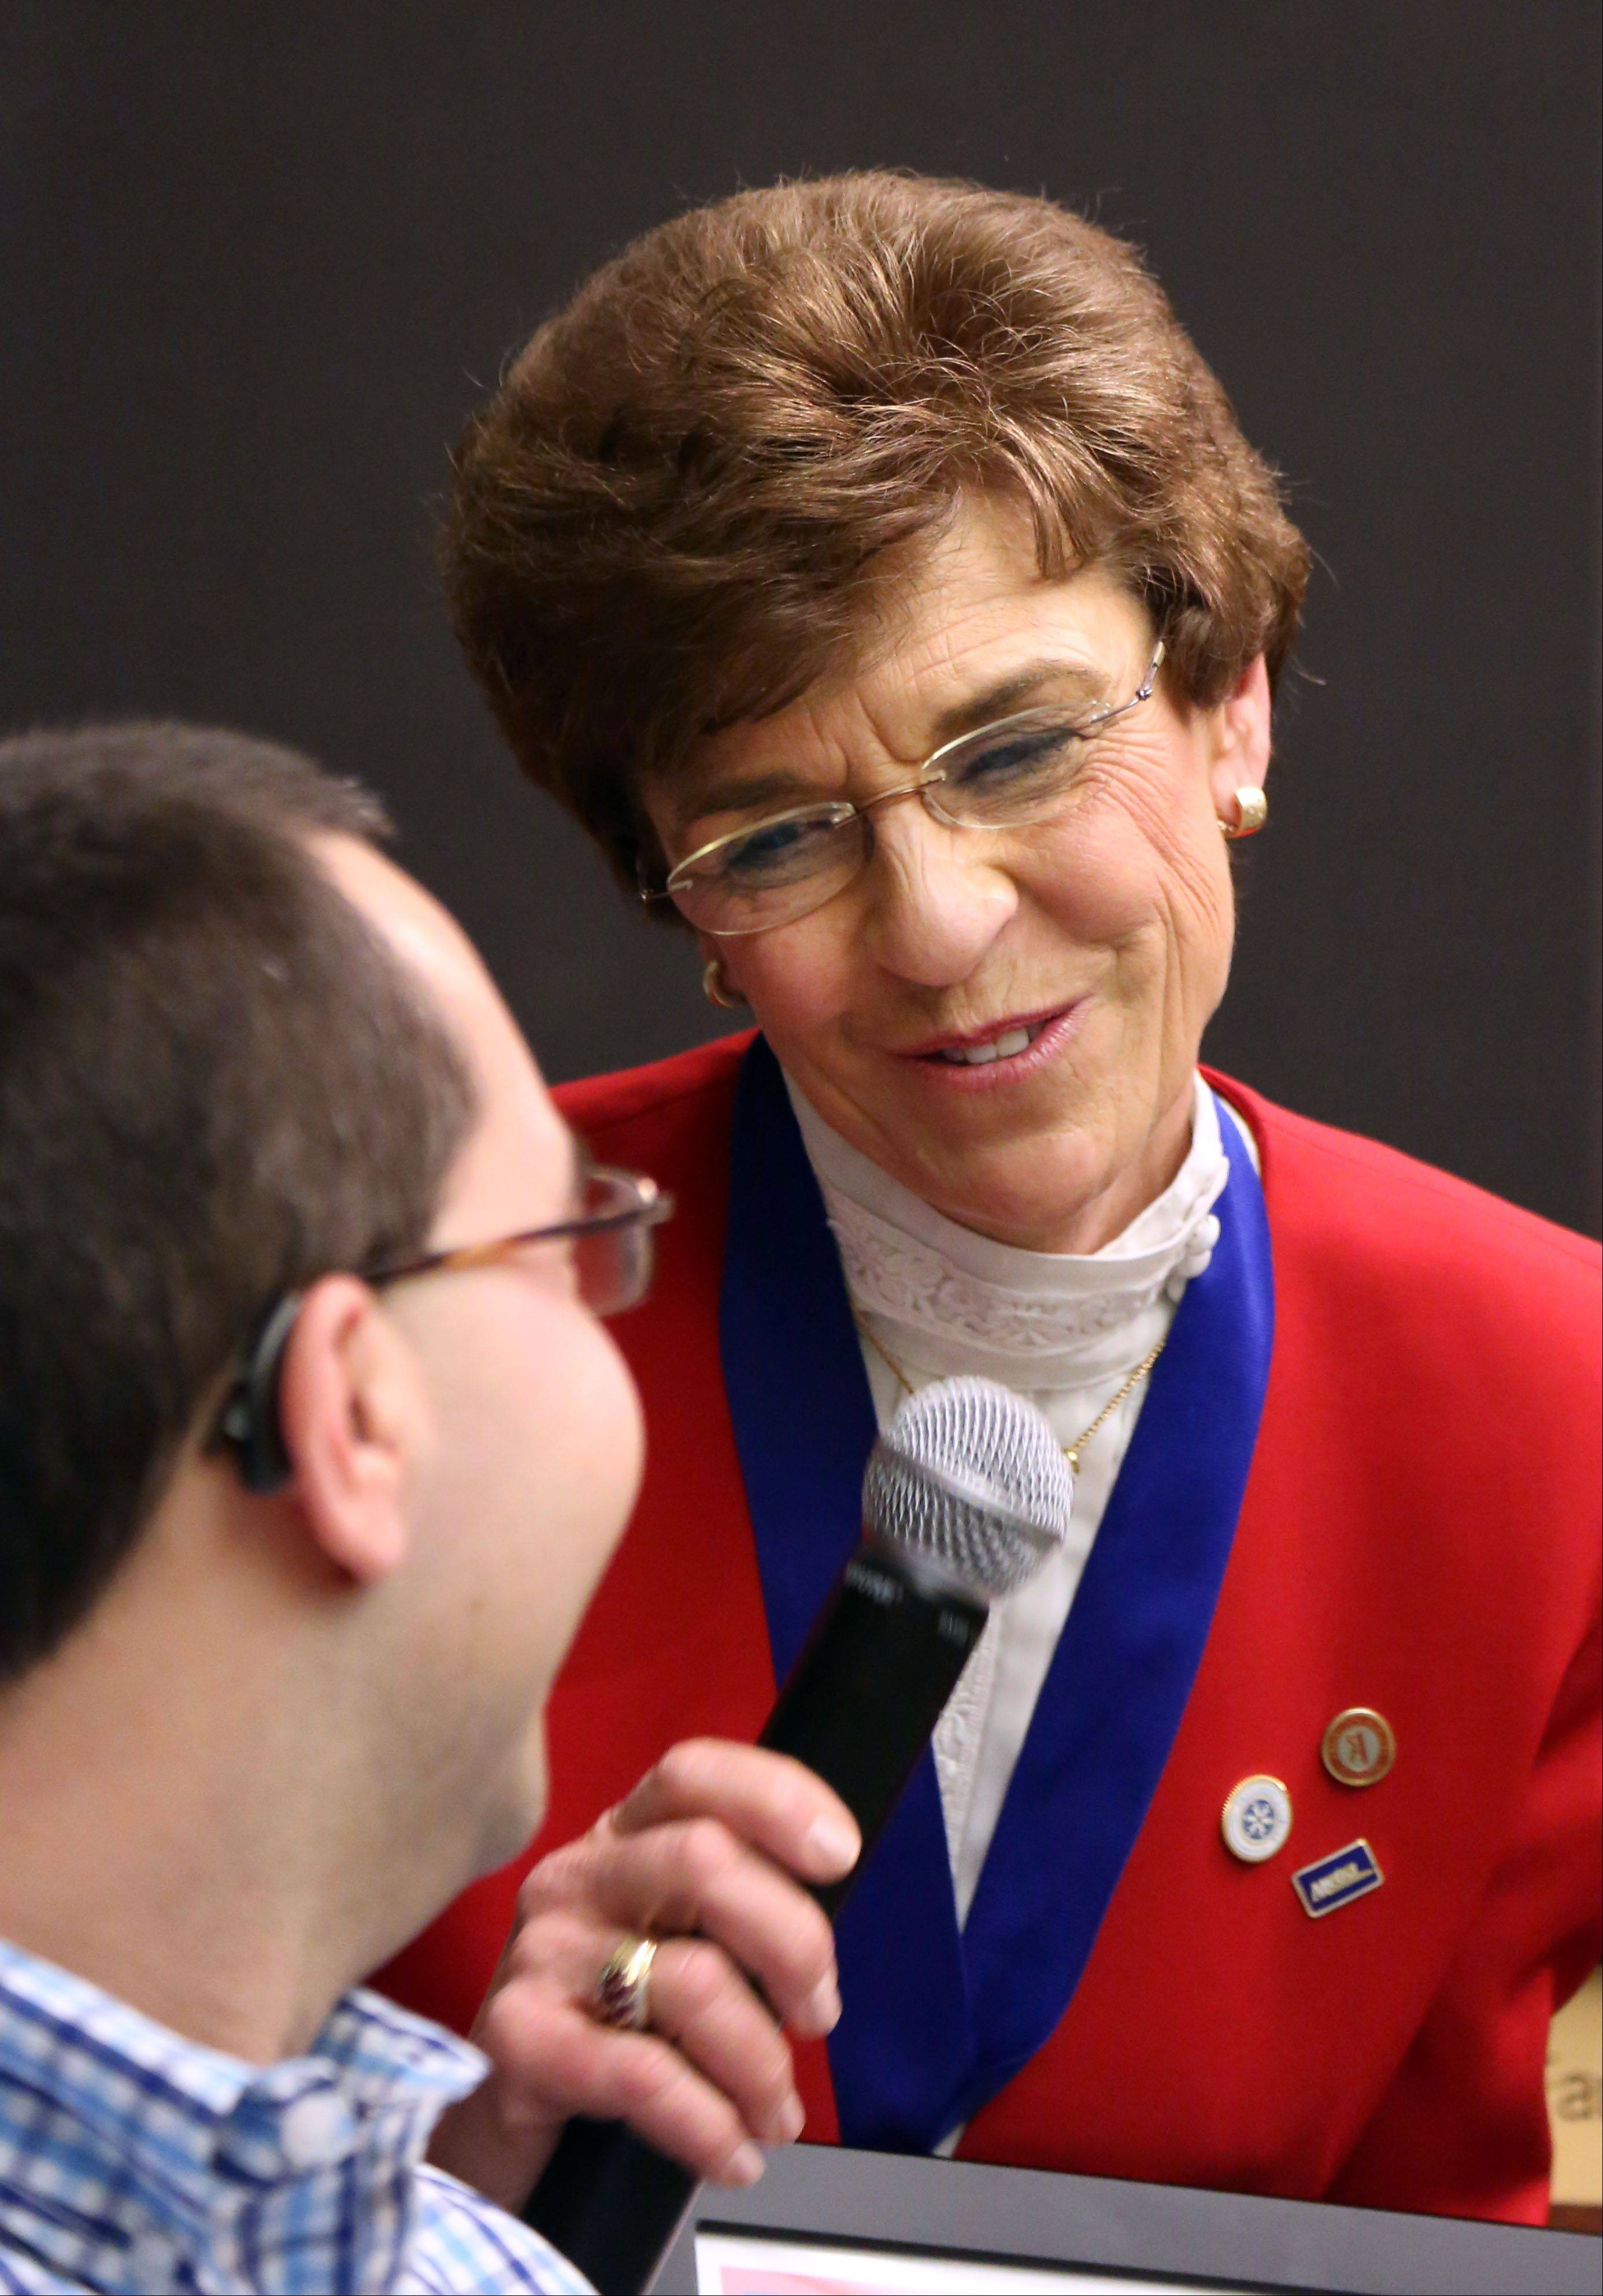 Earlier this year, Seth Goldberg gives retiring Arlington Heights Mayor Arlene Mulder an honor on behalf of the Muscular Dystrophy Association.